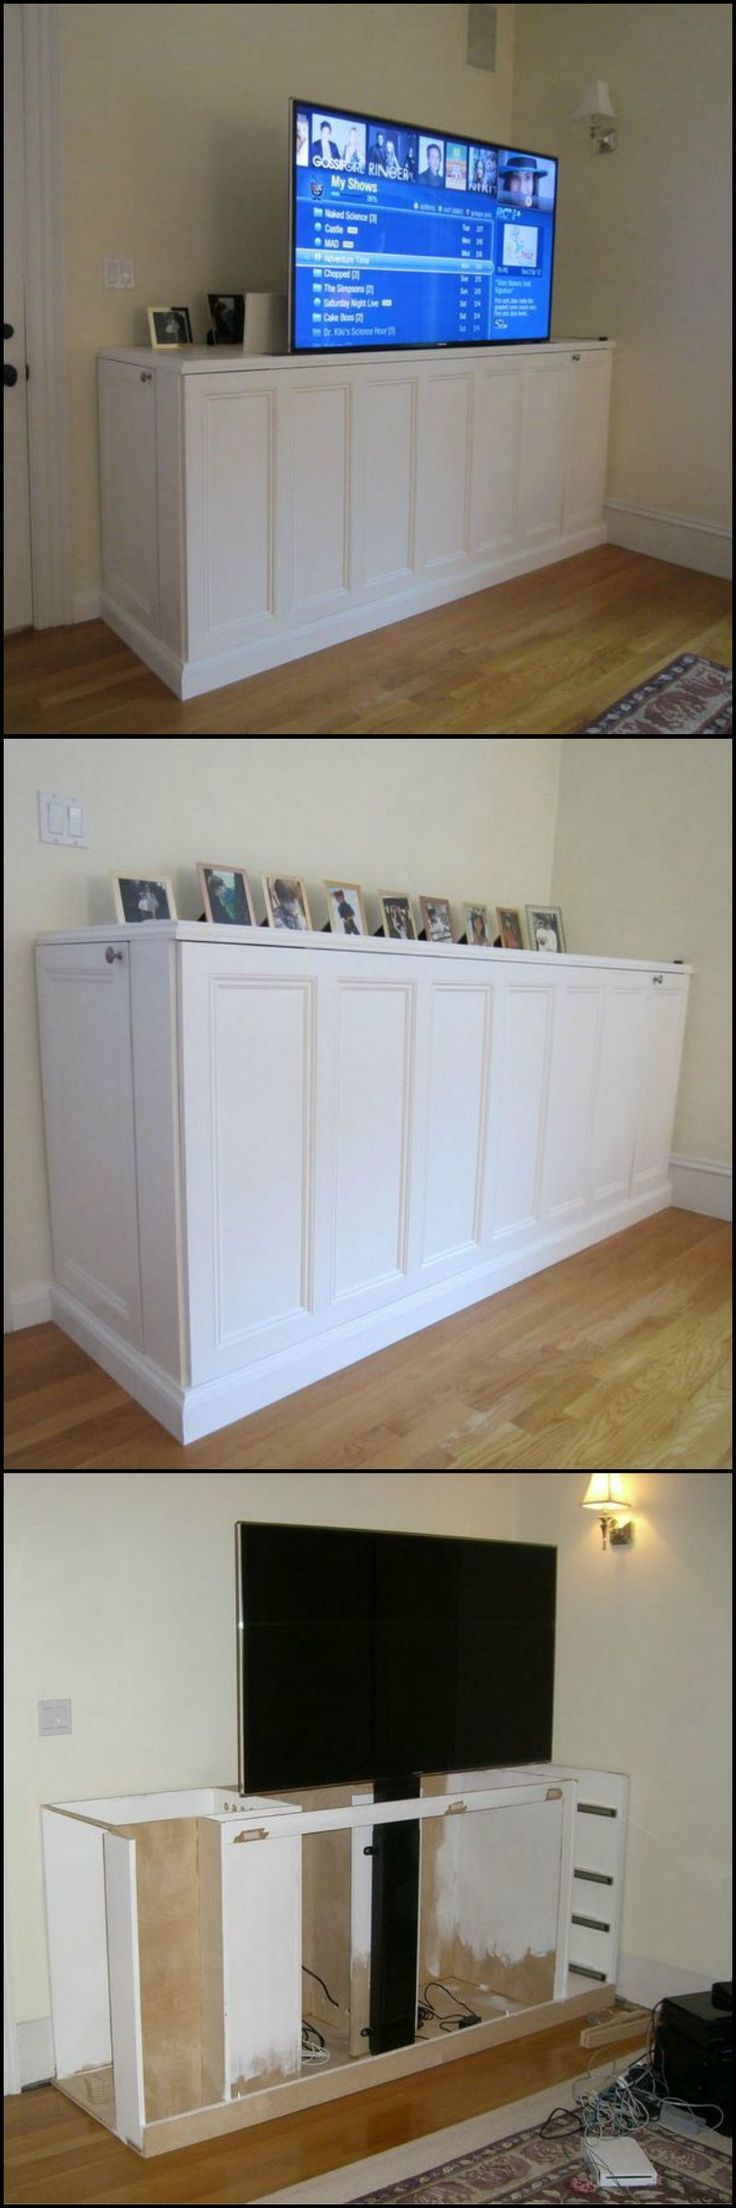 How To Build A TV Lift Cabinet  http://theownerbuildernetwork.co/m3hm  Does your living room have a huge flat screen TV? Is it dominating the room? Wouldn't it be nice if it was out of view when not in use?  This is a great solution to make that flat screen TV disappear when it's not in use.